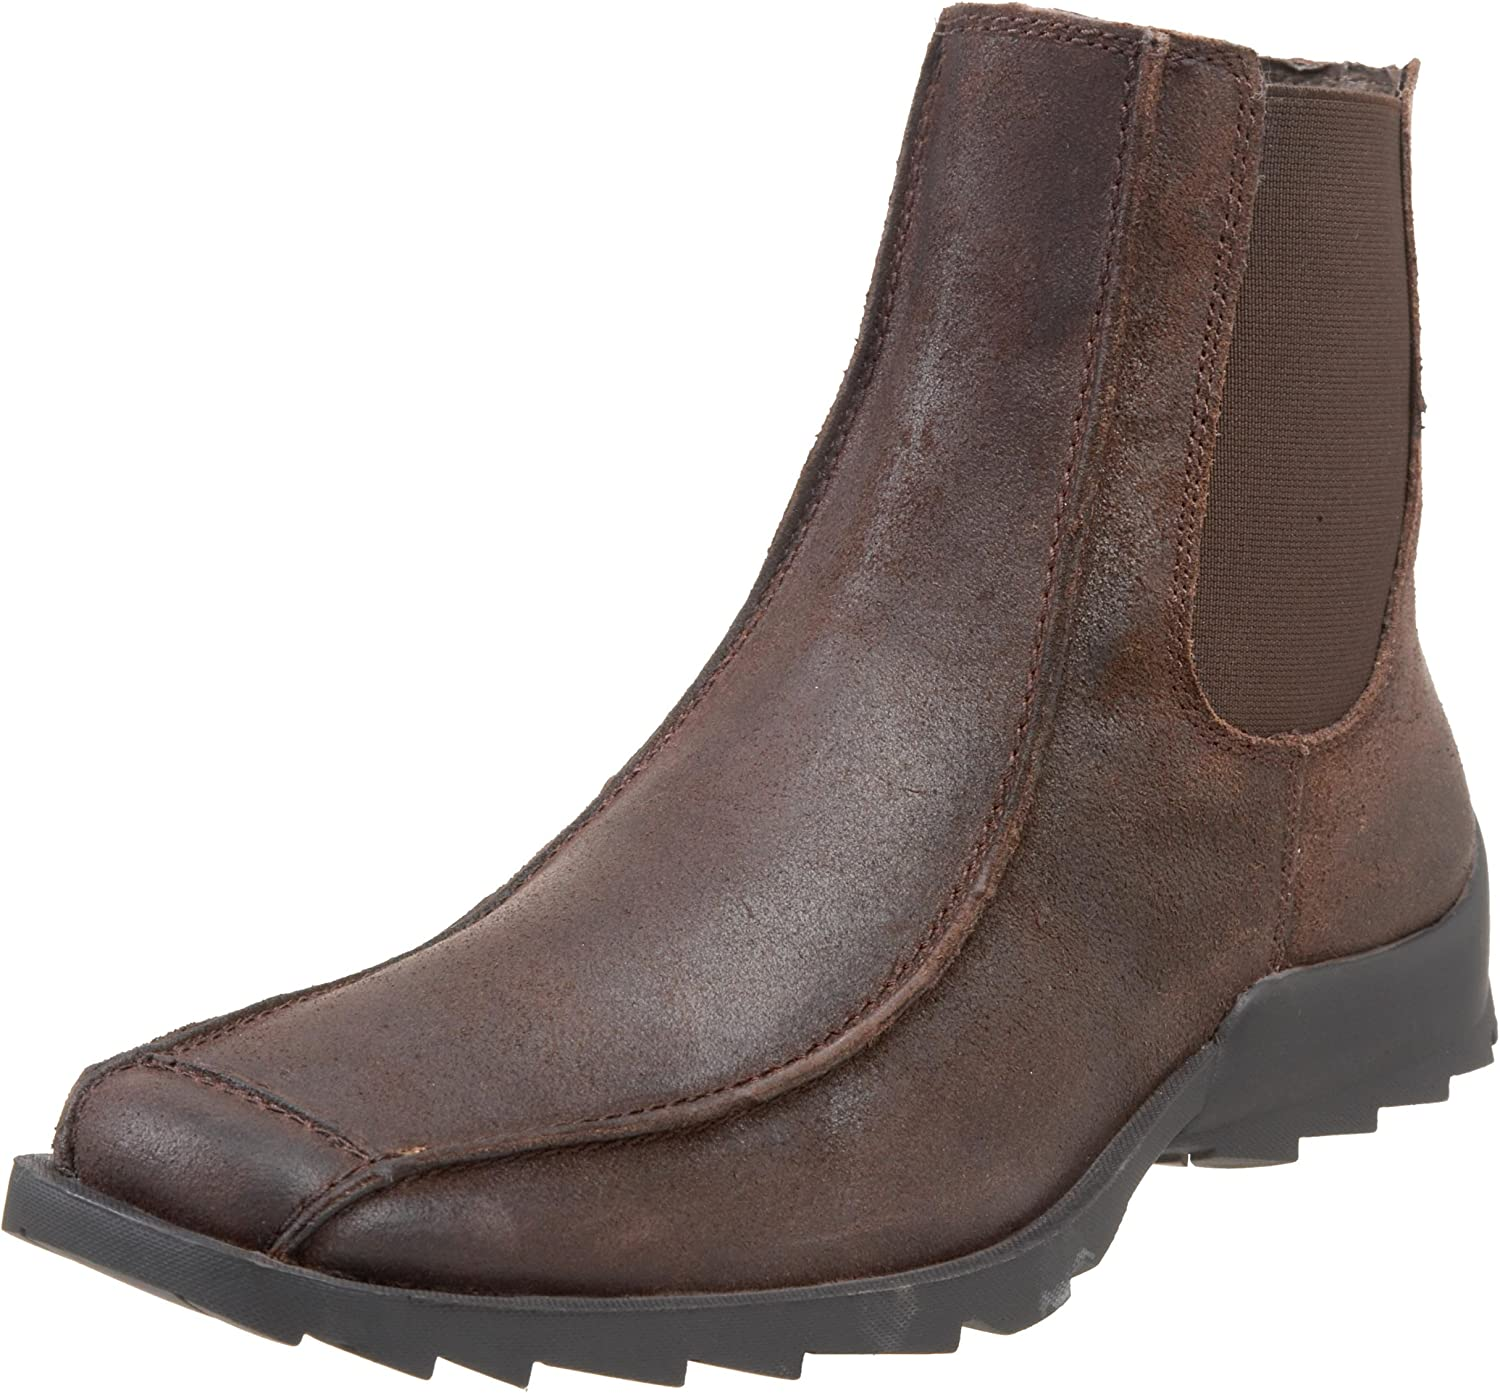 Kenneth Cole 2021new shipping free shipping Max 64% OFF REACTION Men's Boot Multi-Scale